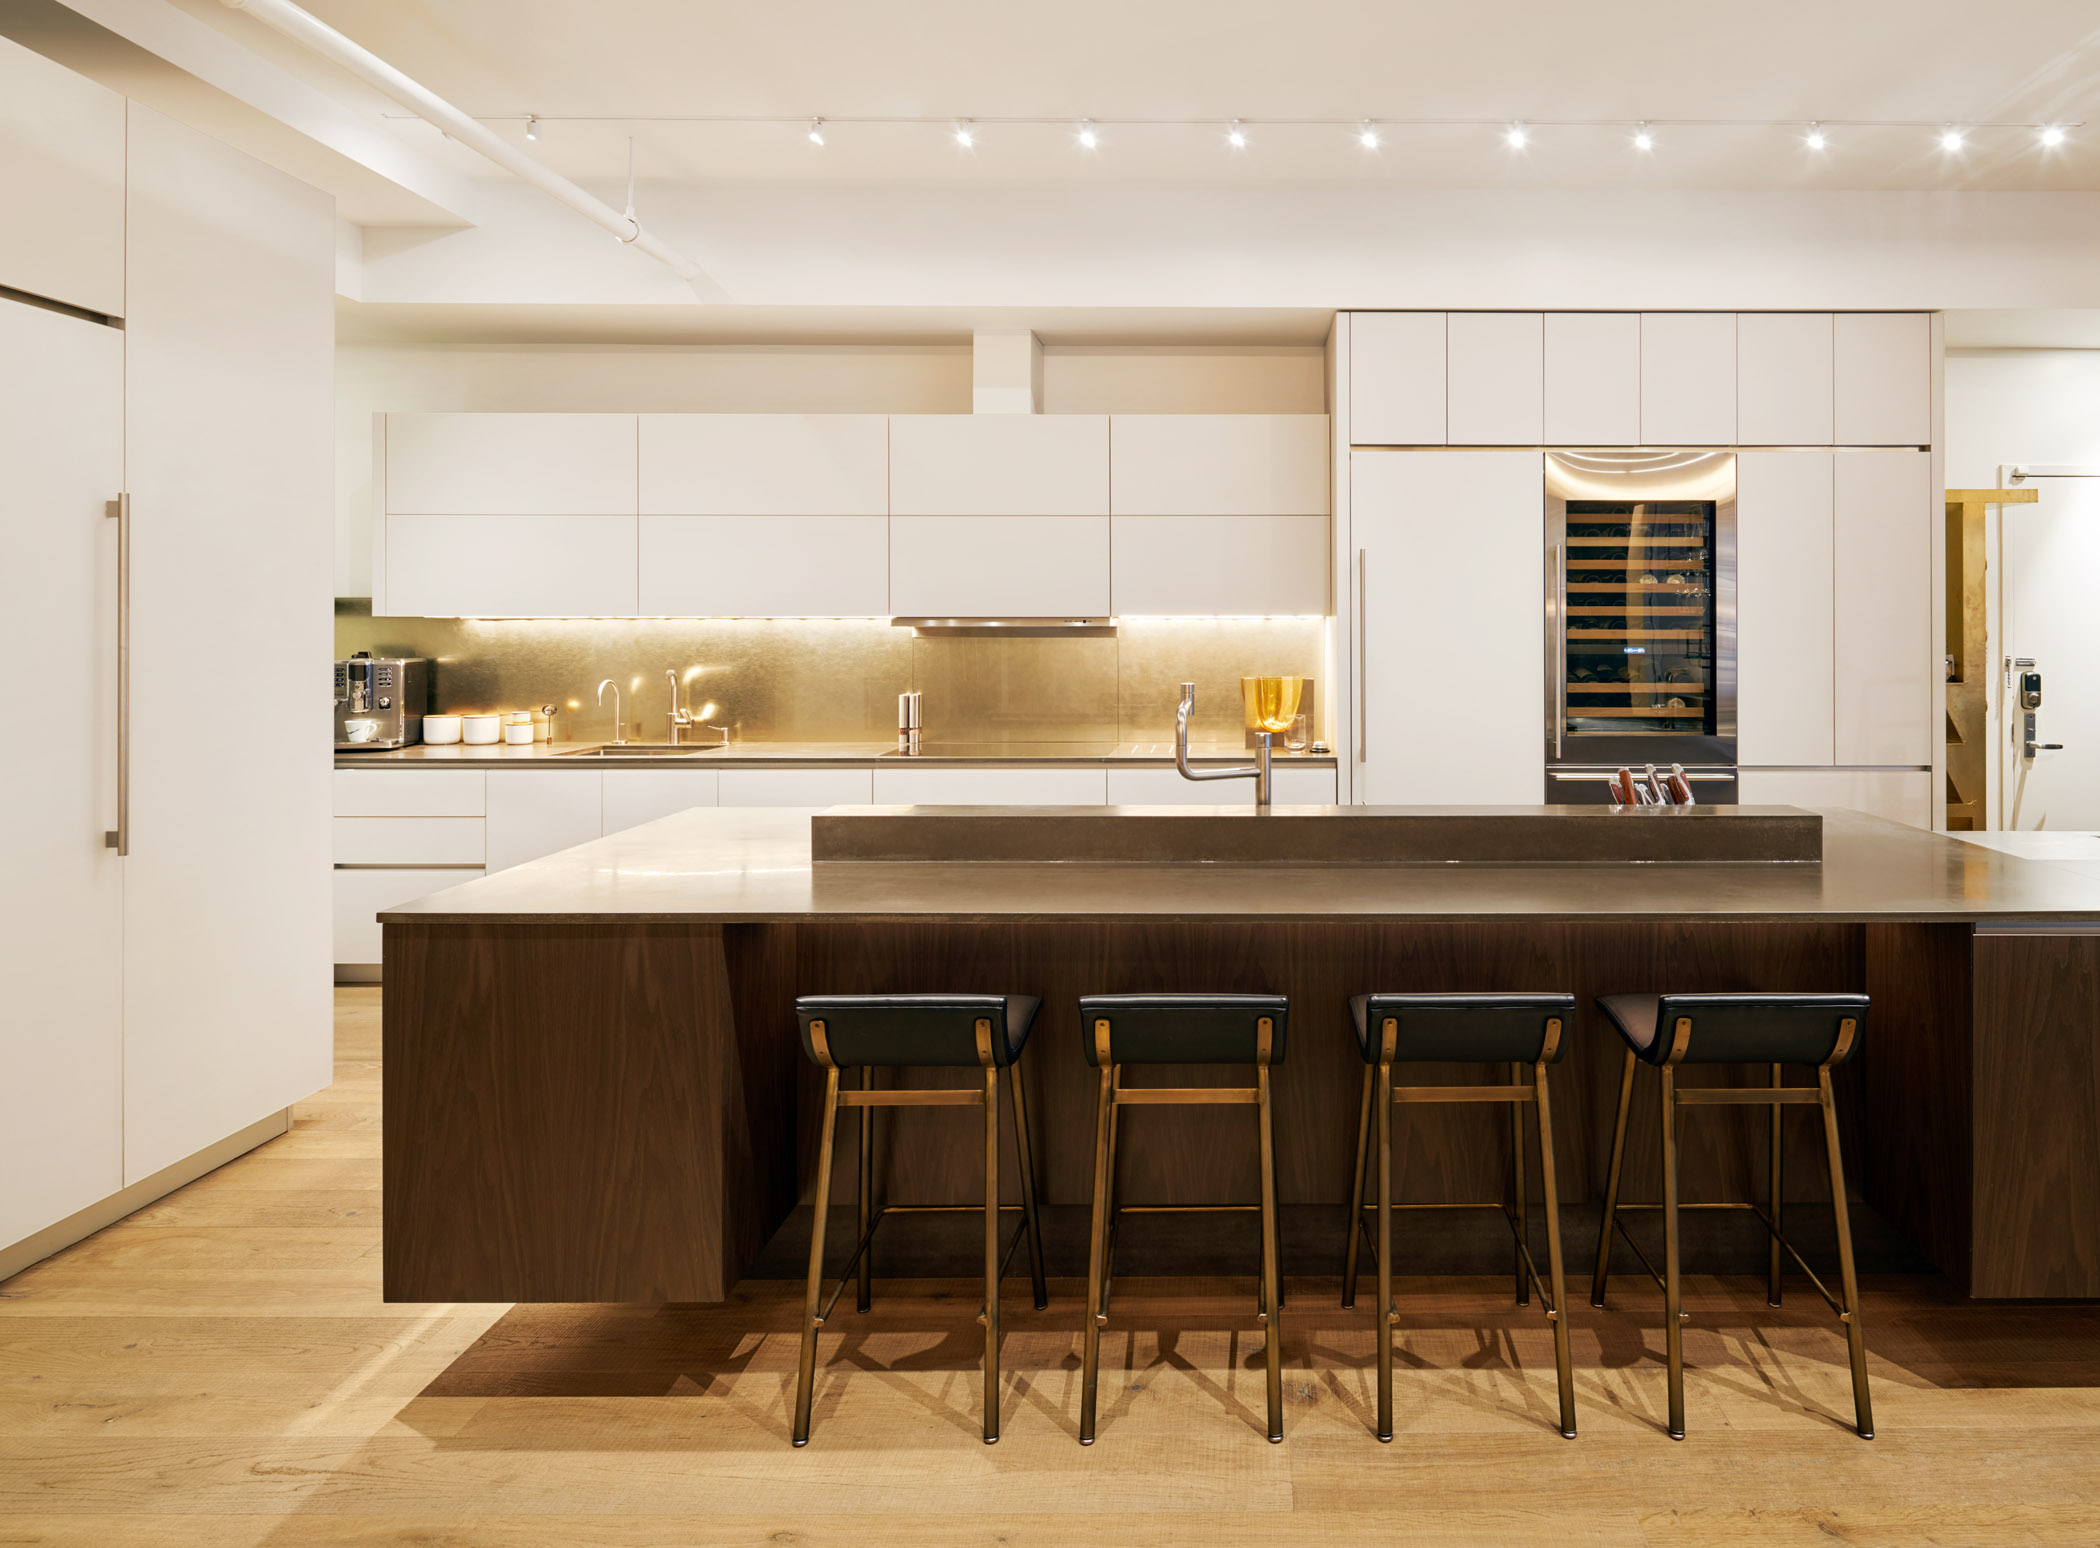 181015_16CrosbySt_Kitchen1_149